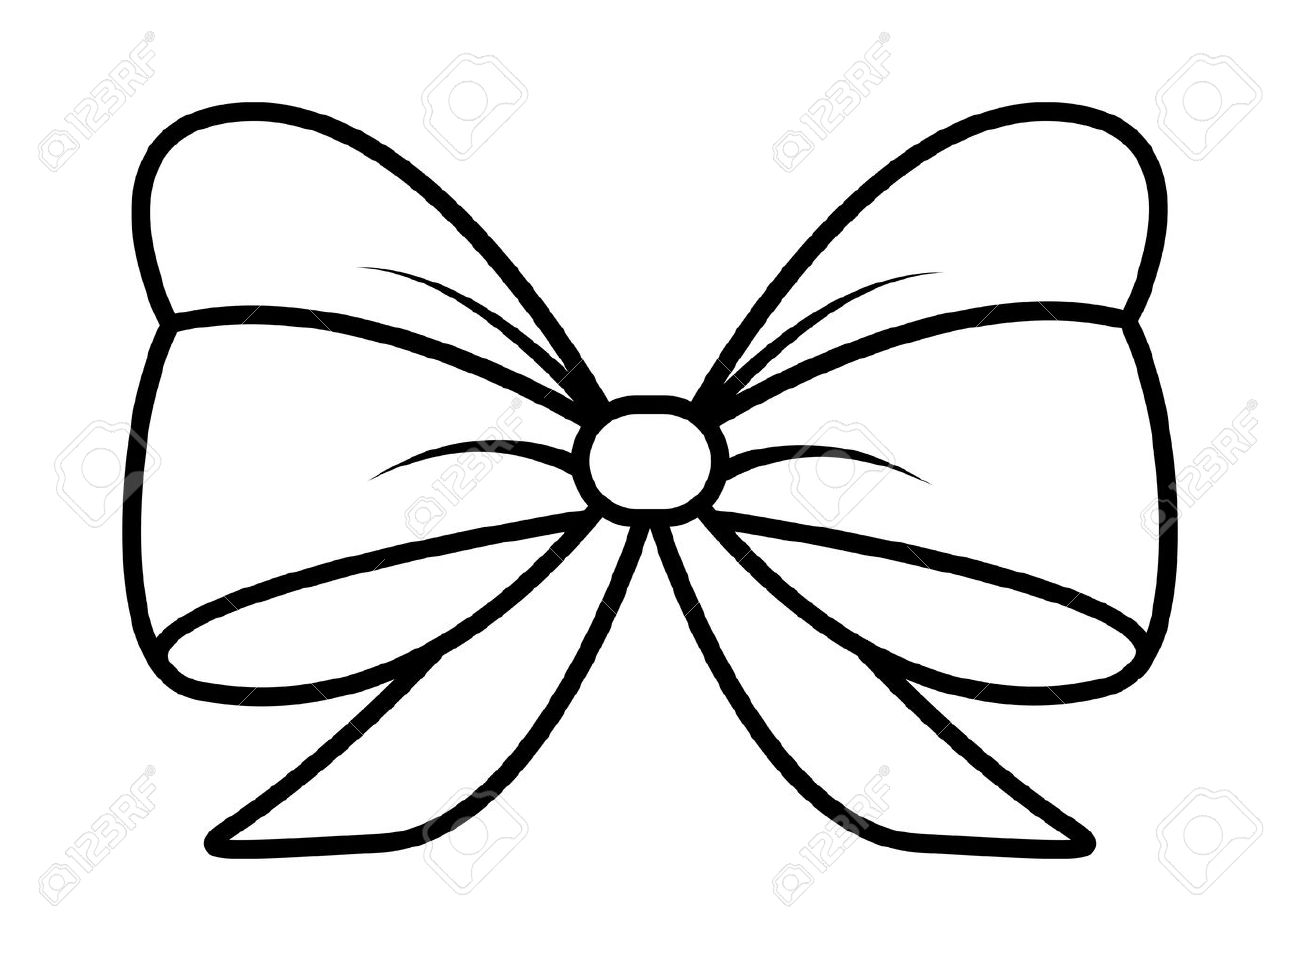 1300x961 Ribbon Bow Silhouette For Christmas Present Symbol Design. Vector